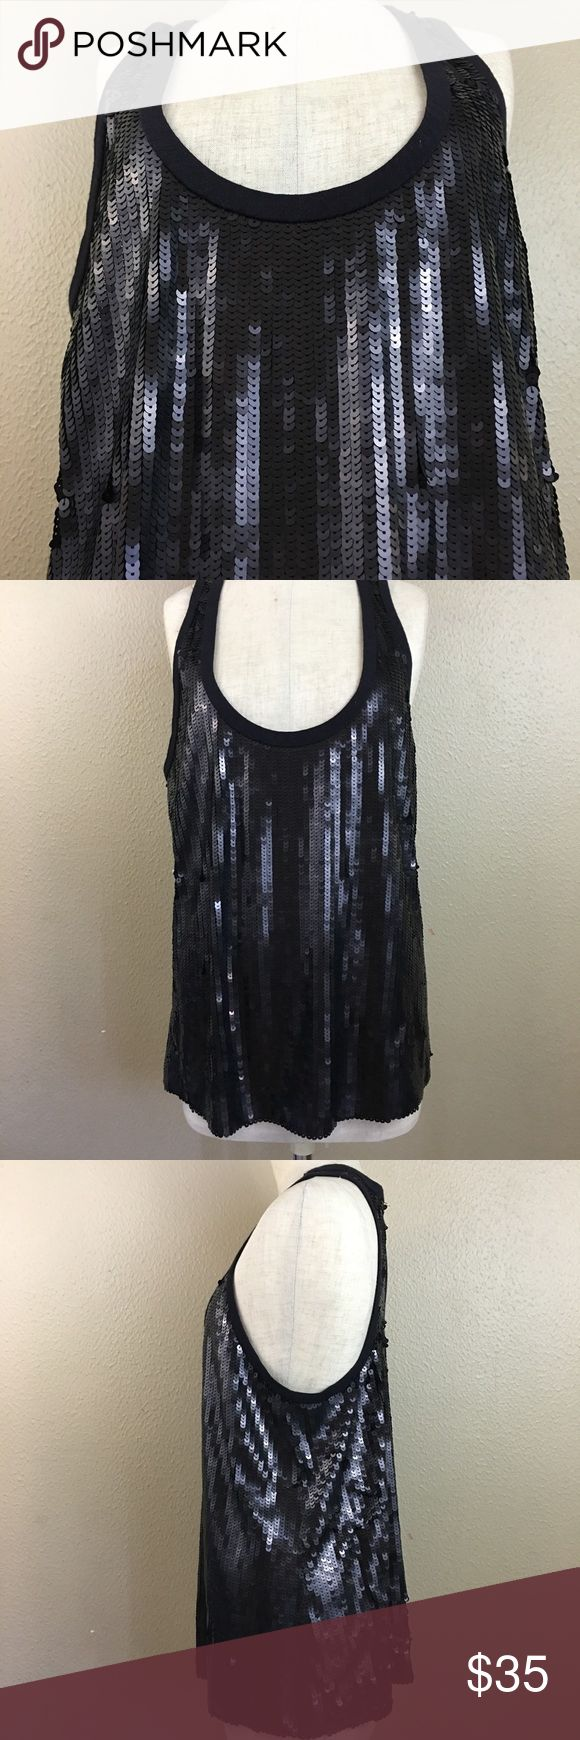 Seven for all Mankind Sequin tank Top Black Black Sequin Top by Seven for all Mankind sz L perfect for your next date night or concert. In Excellent Condition Sku#002008002500710 Seven for all Mankind Tops Tank Tops